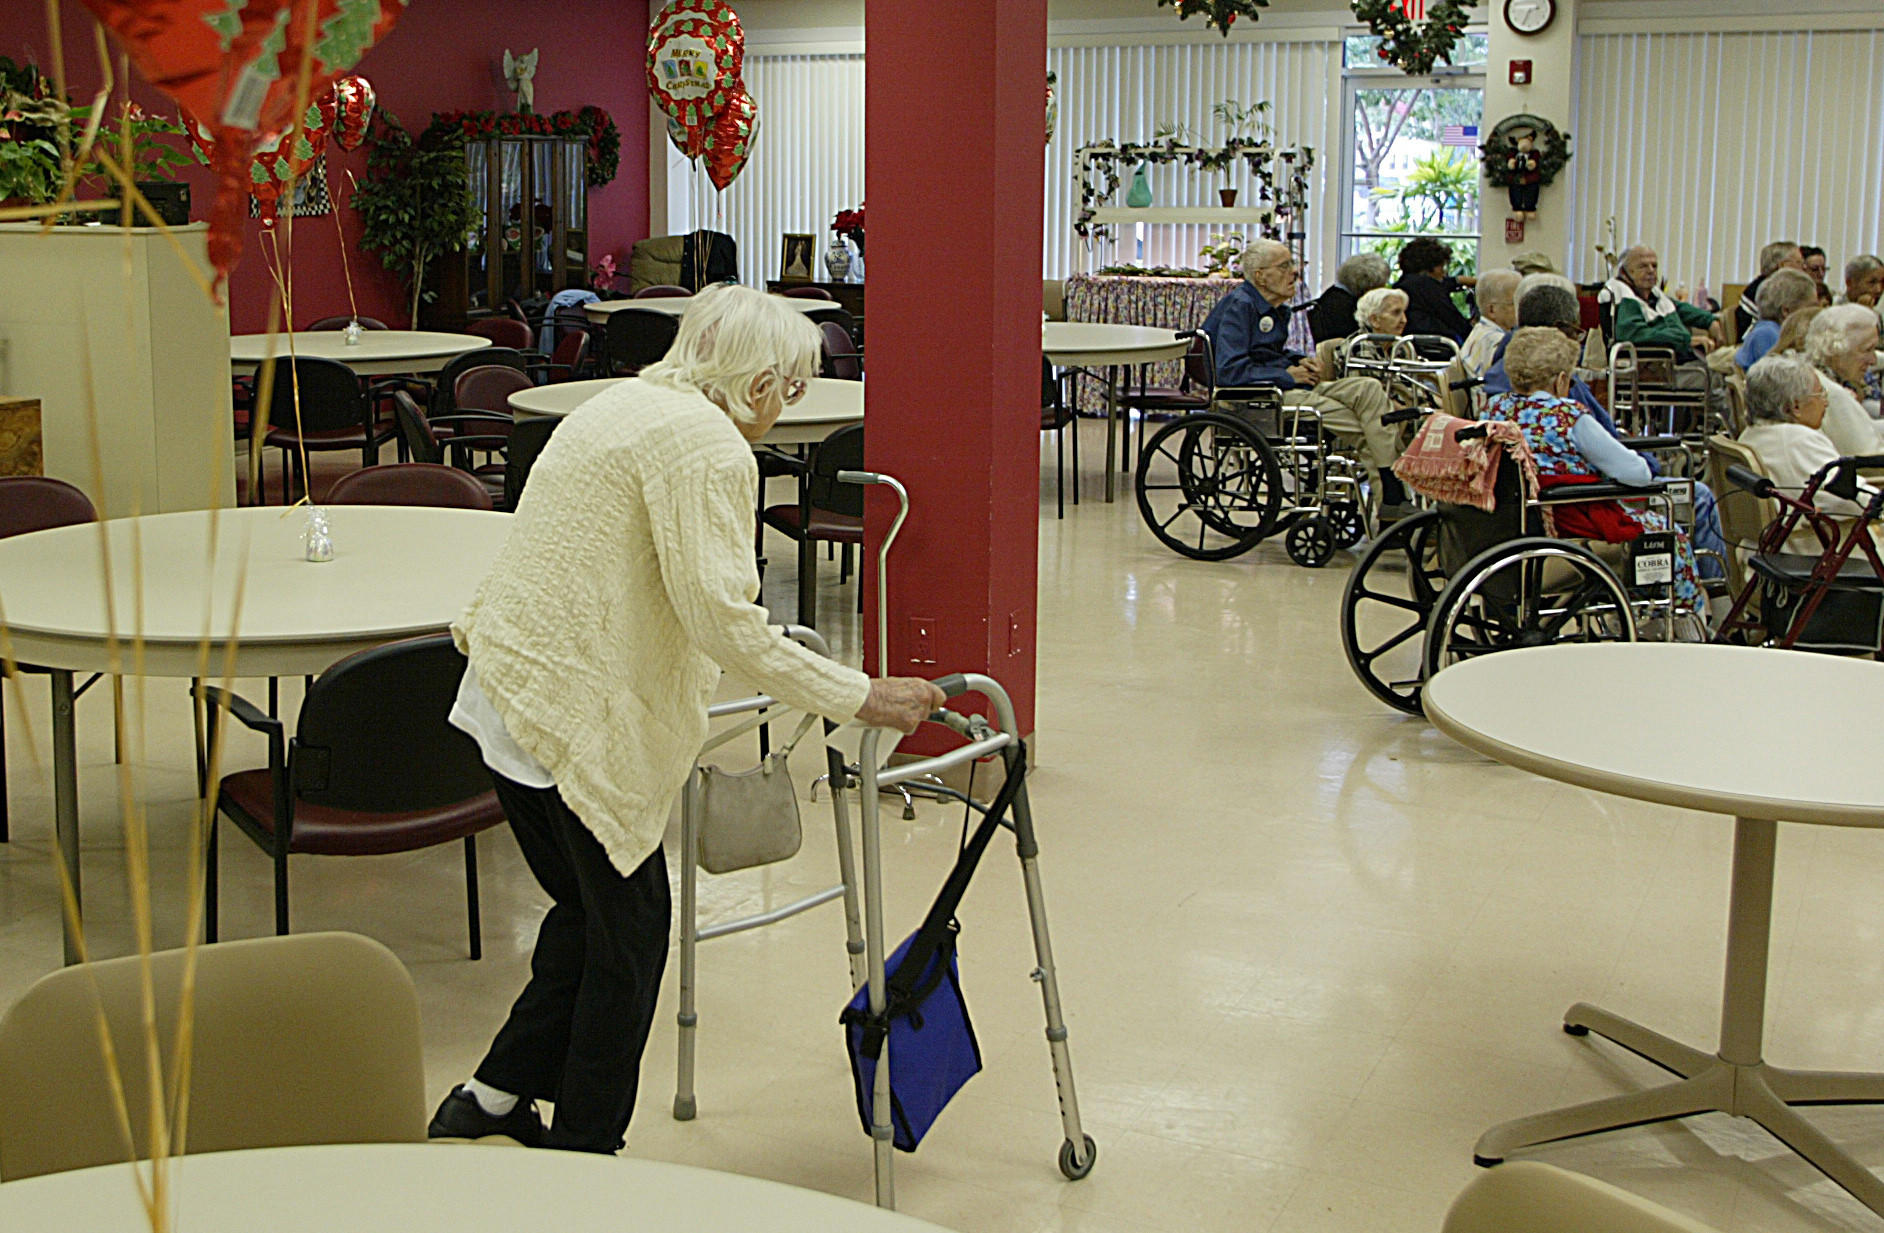 Falls were the top cause of non-fatal injuries to seniors age 65 and older, according the Centers for Disease Control and Prevention, with 2.4 million incidents in 2012.